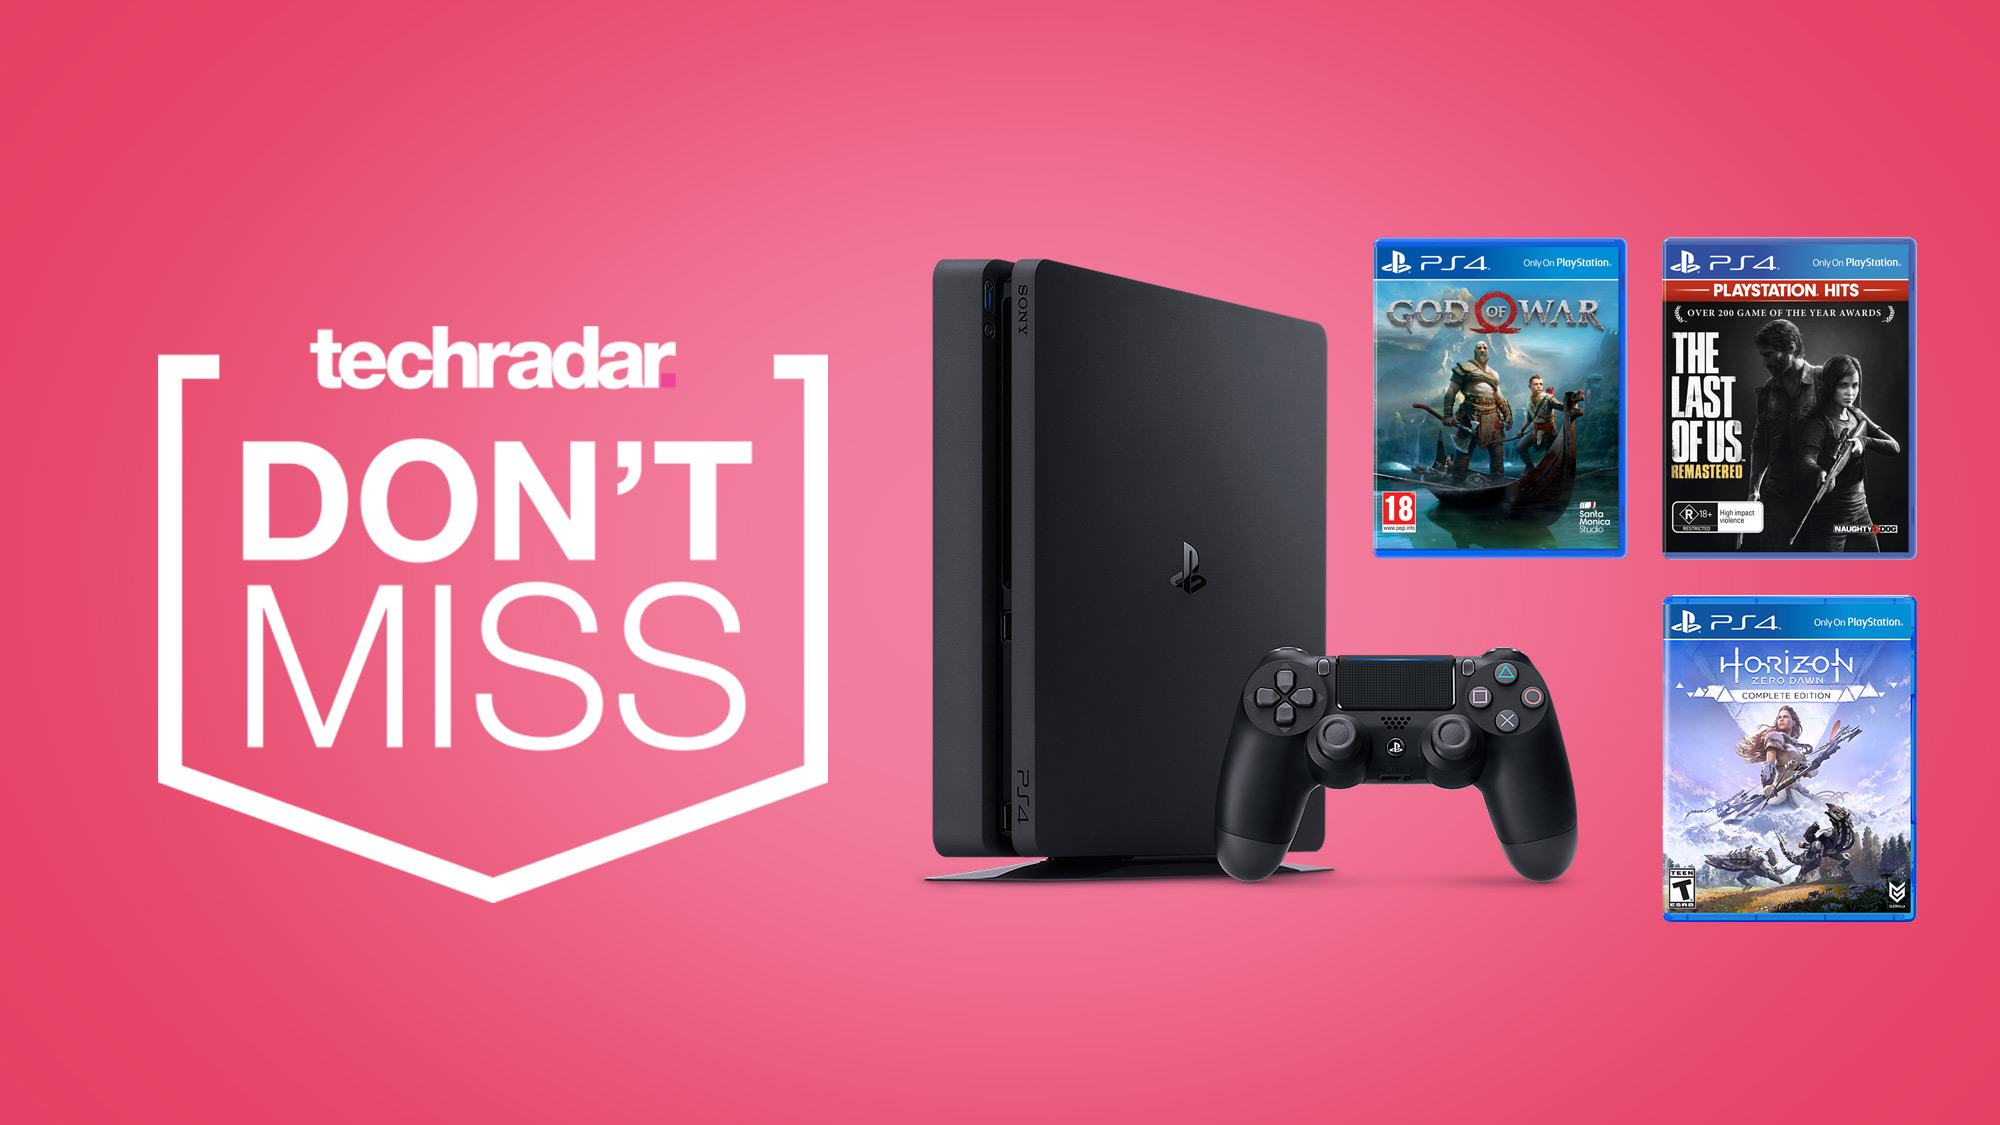 There's still time to grab a cheap PS4 bundle before prices rise again